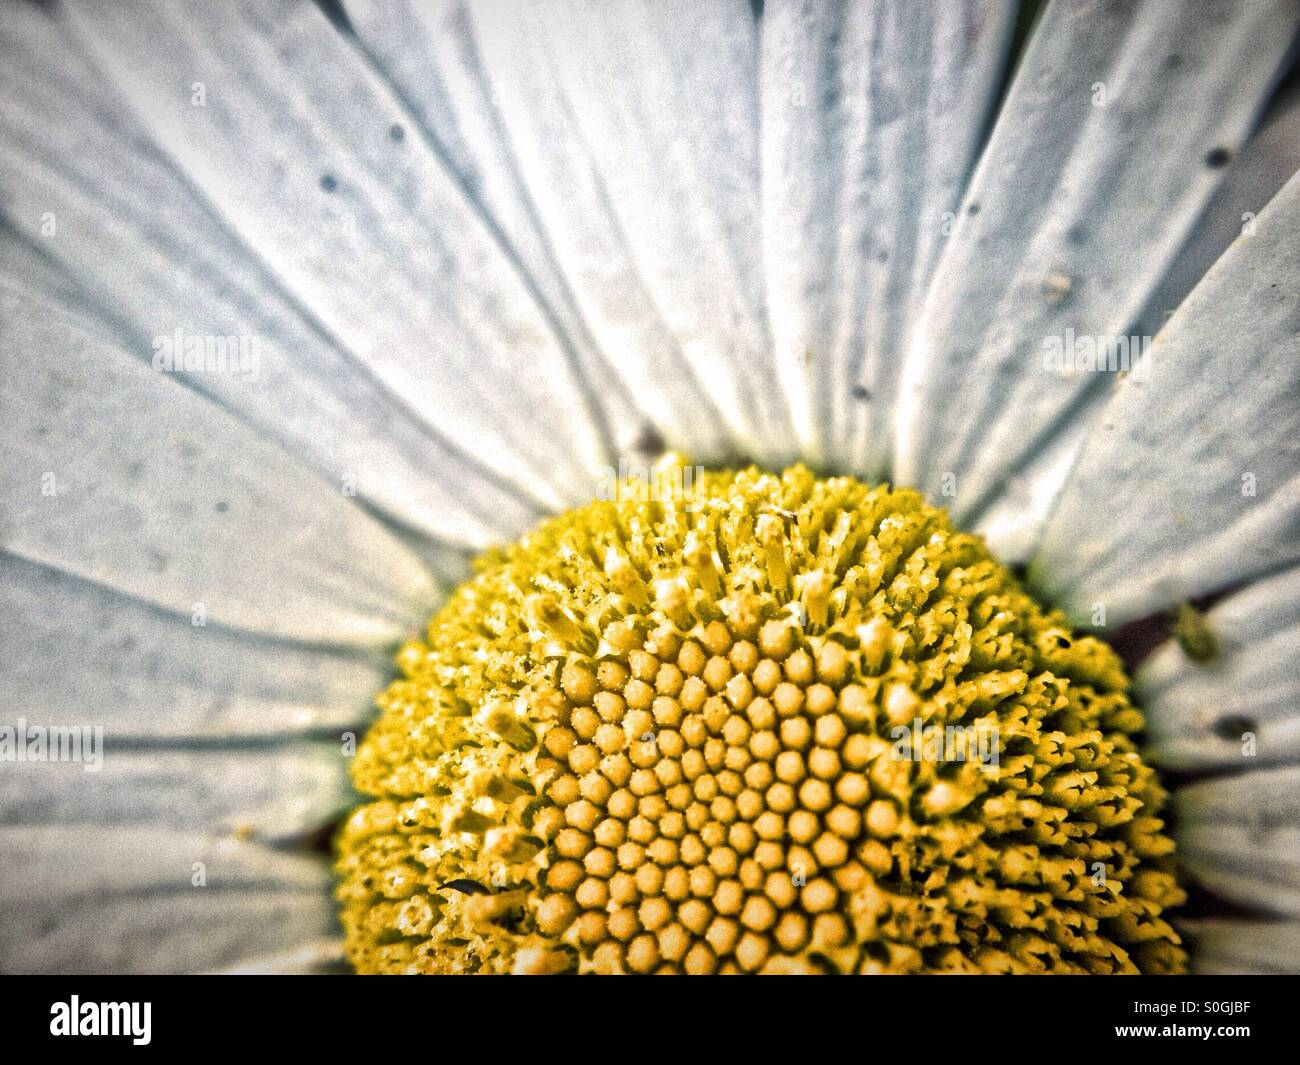 Large daisy like flower stock photo royalty free image 310152291 large daisy like flower izmirmasajfo Image collections